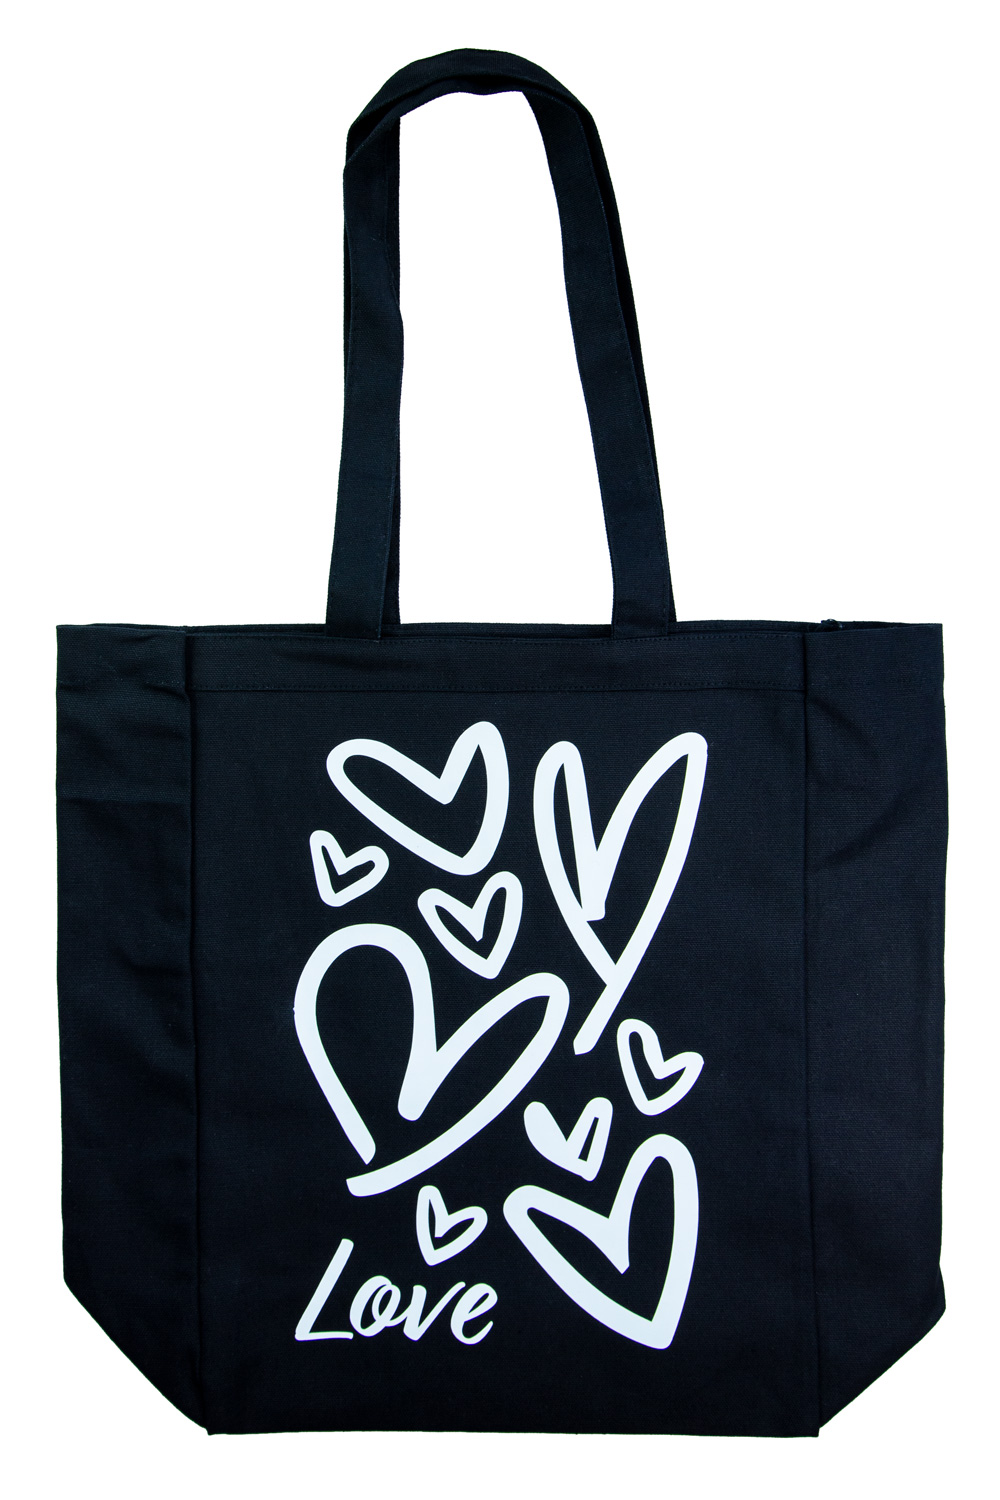 Vinyl_HeatPress_ToteBag_3_3x2.jpg